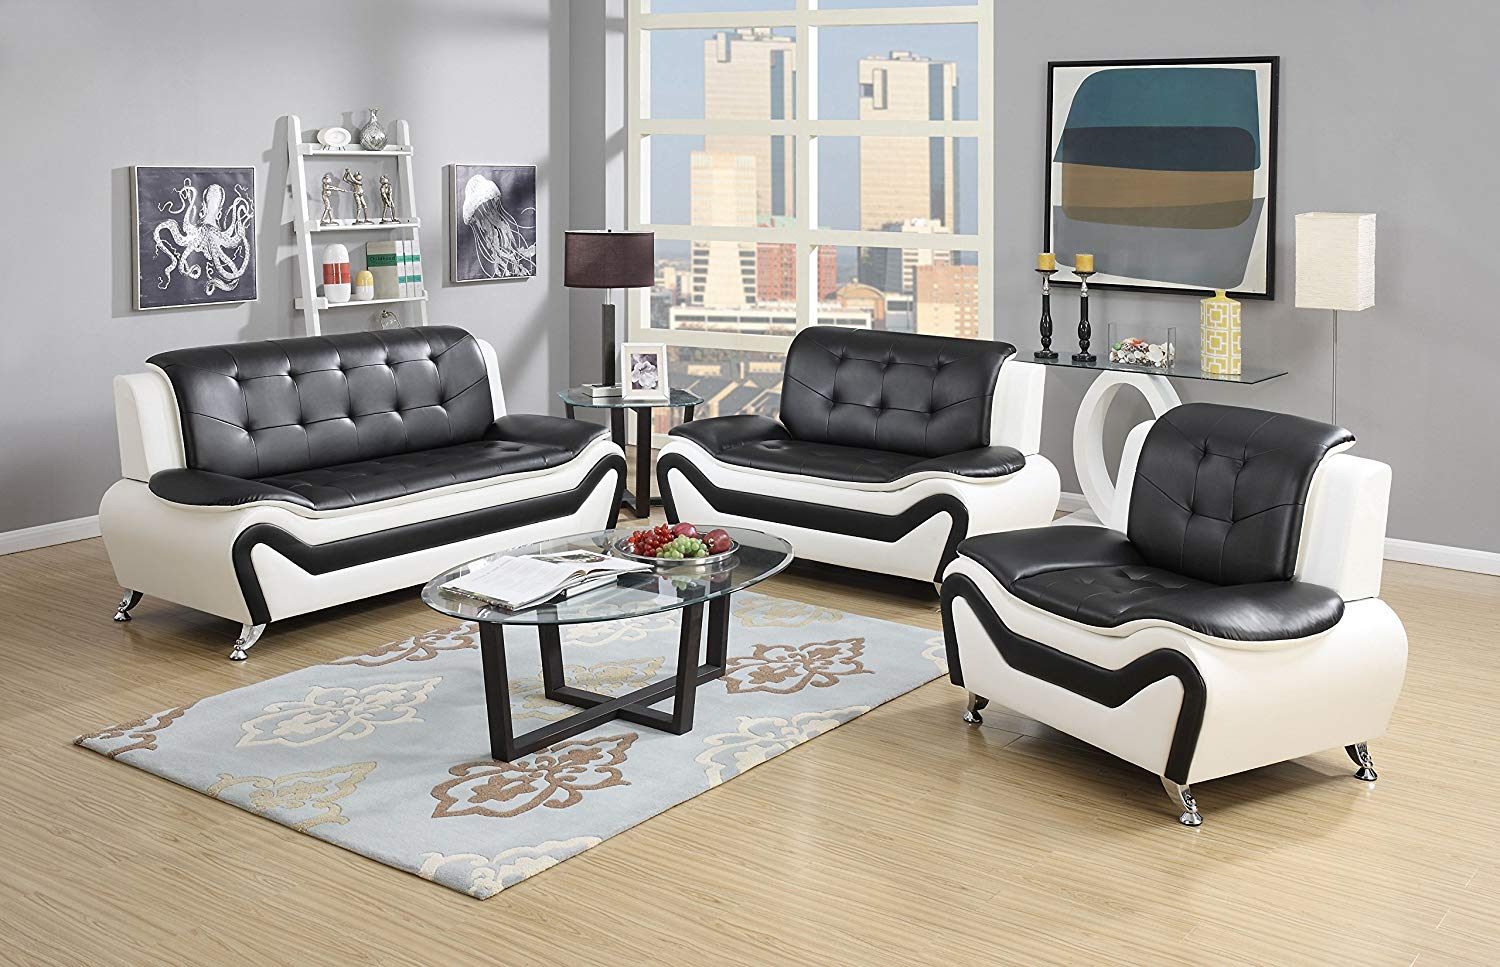 amazon.com: us pride furniture 3 piece modern bonded leather sofa set MTPEEDK